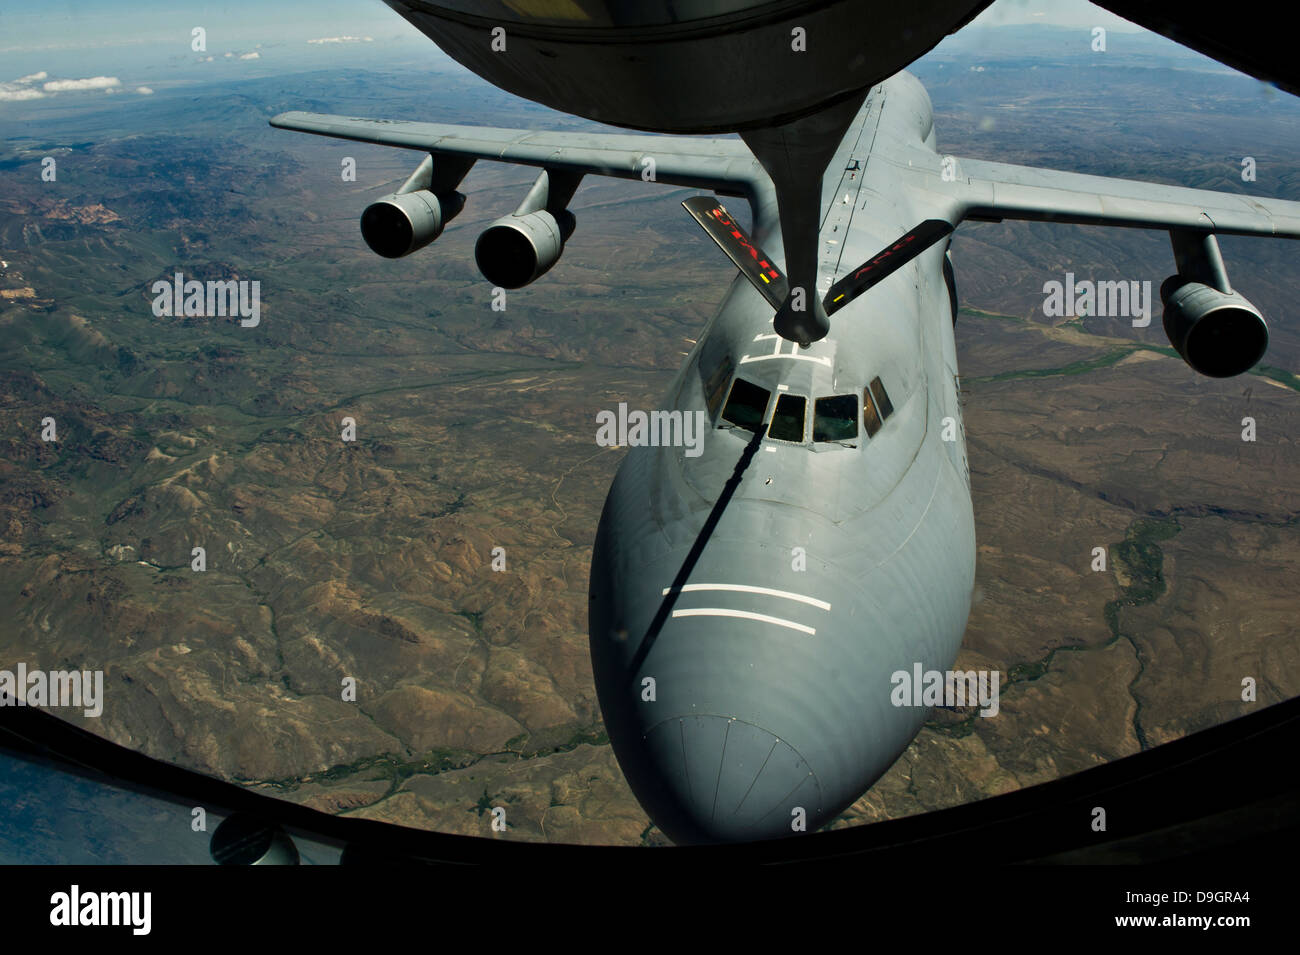 June 11, 2012 - A U.S. Air Force KC-135R Stratotanker aircraft refuels a C-5B Galaxy. - Stock Image